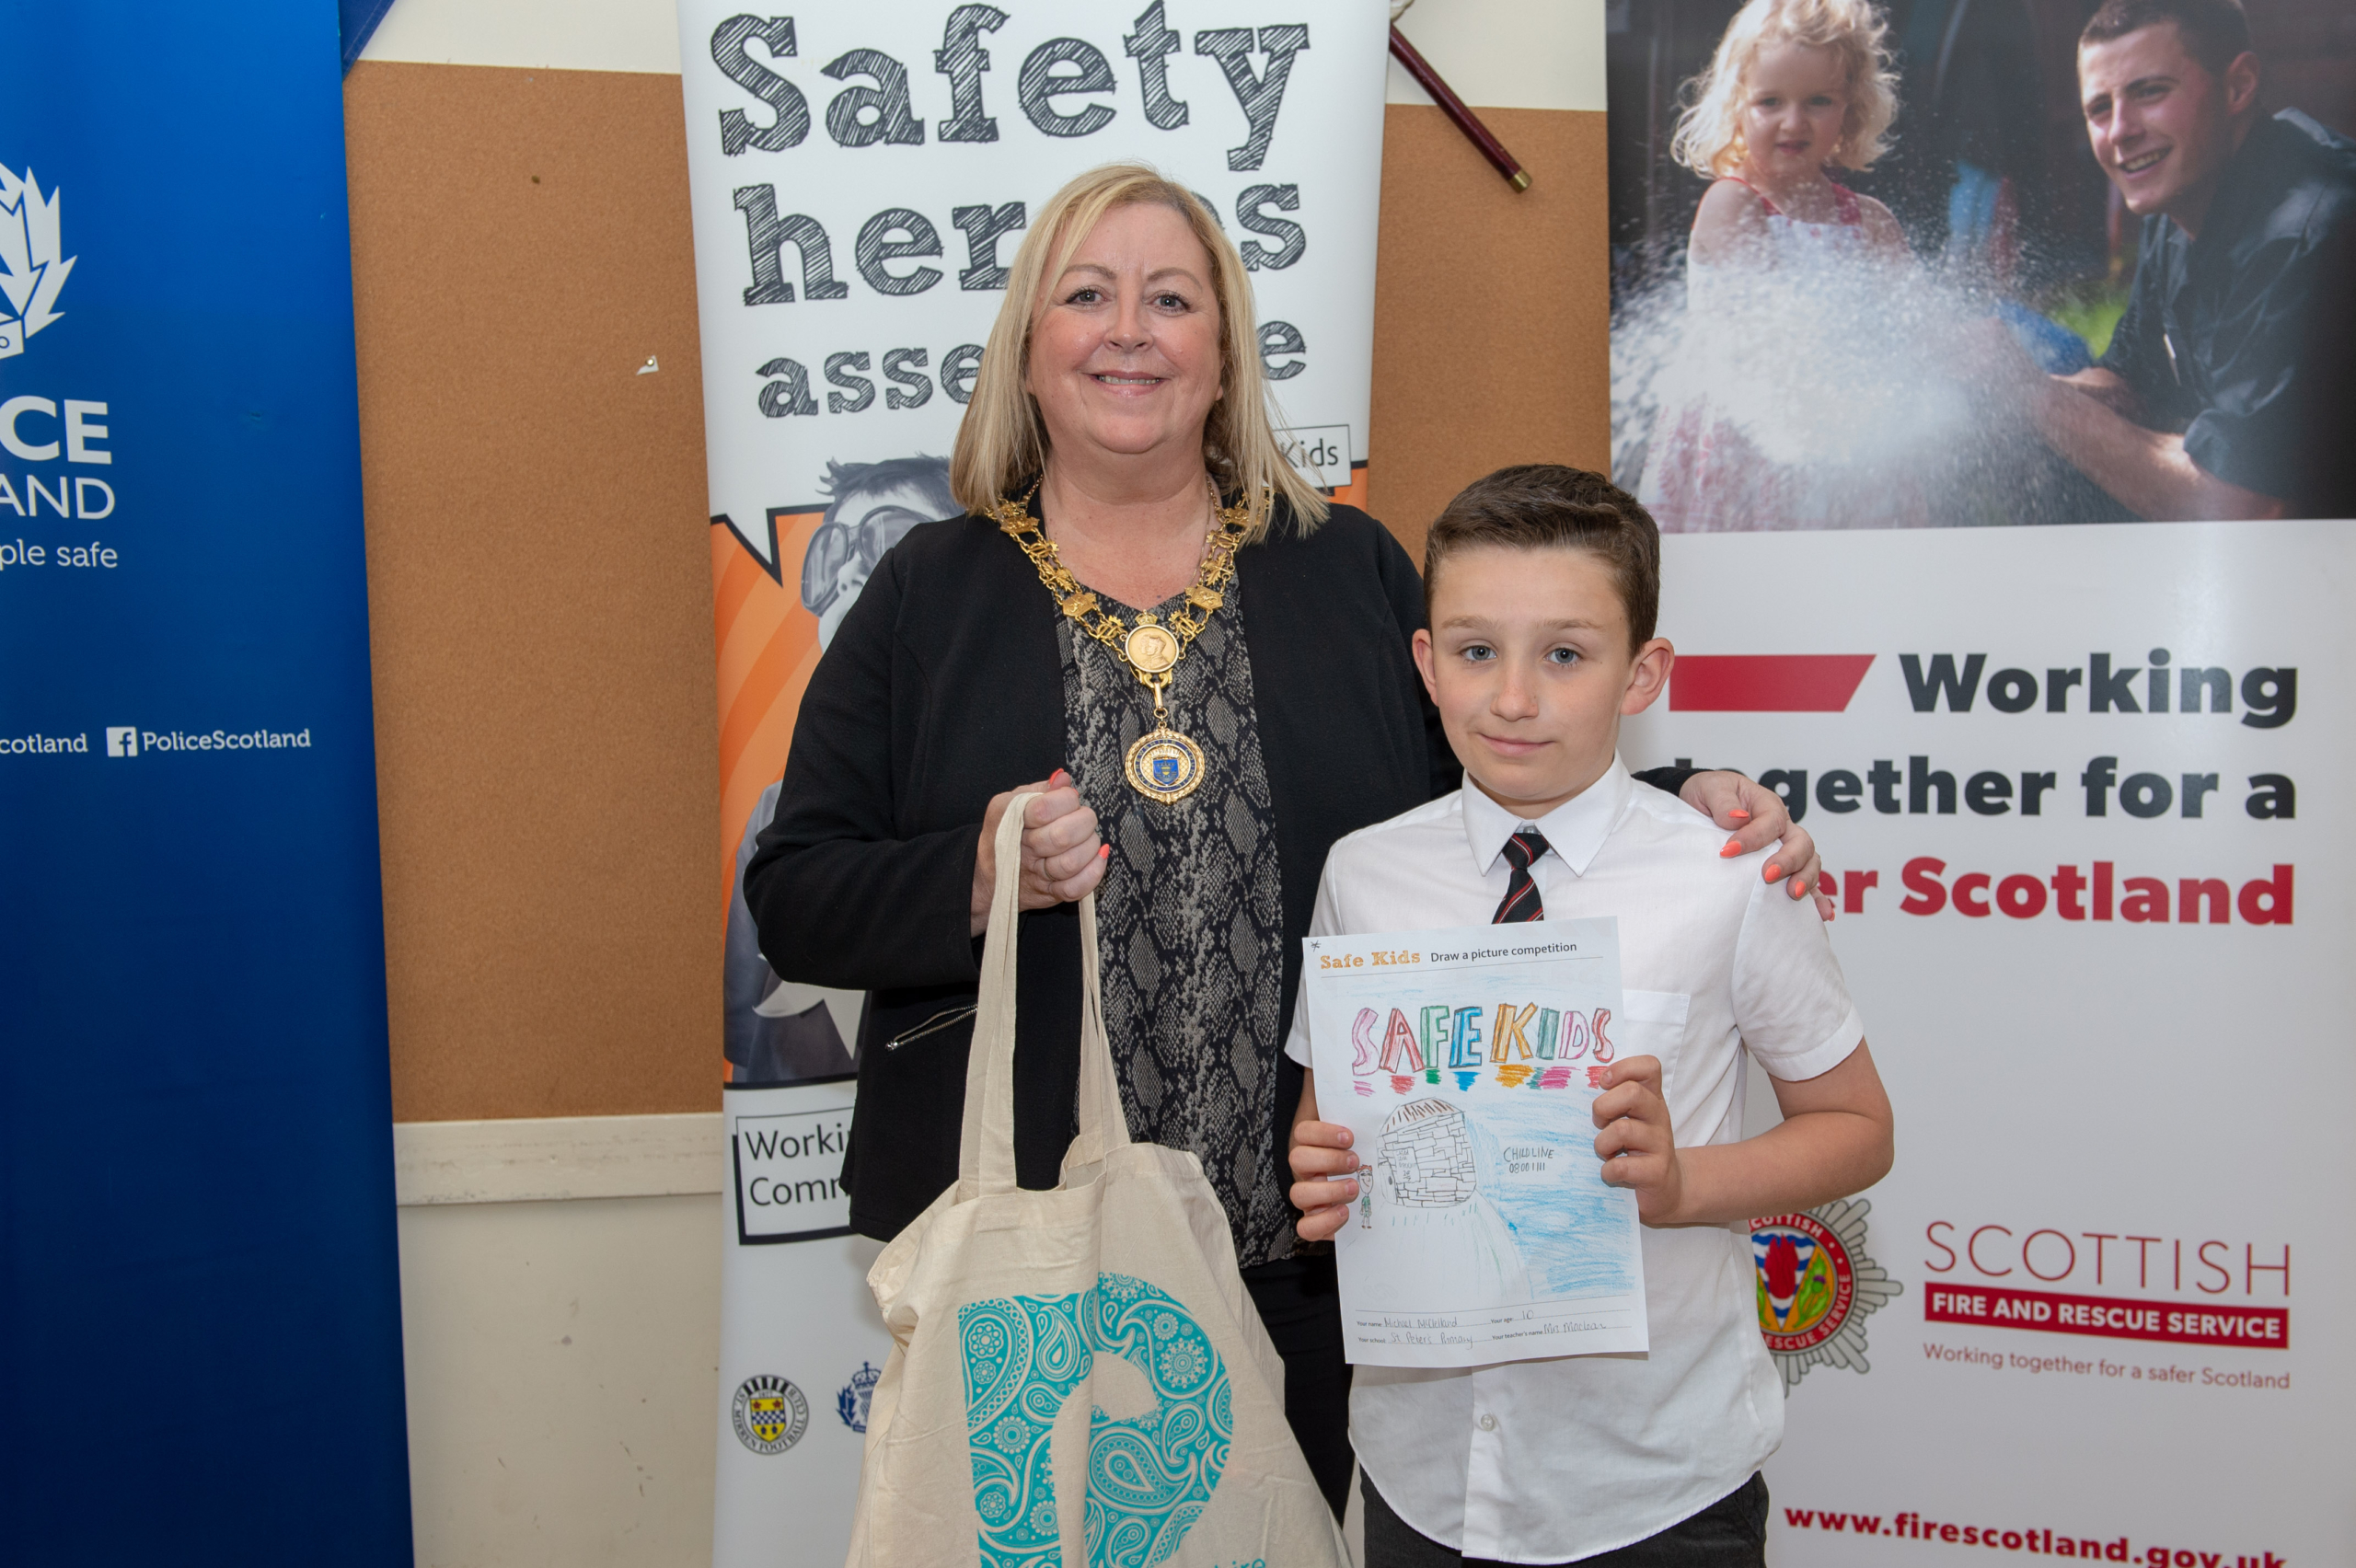 Renfrewshire's Provost Lorraine Cameron with Michael McClelland, St Peter's Primary